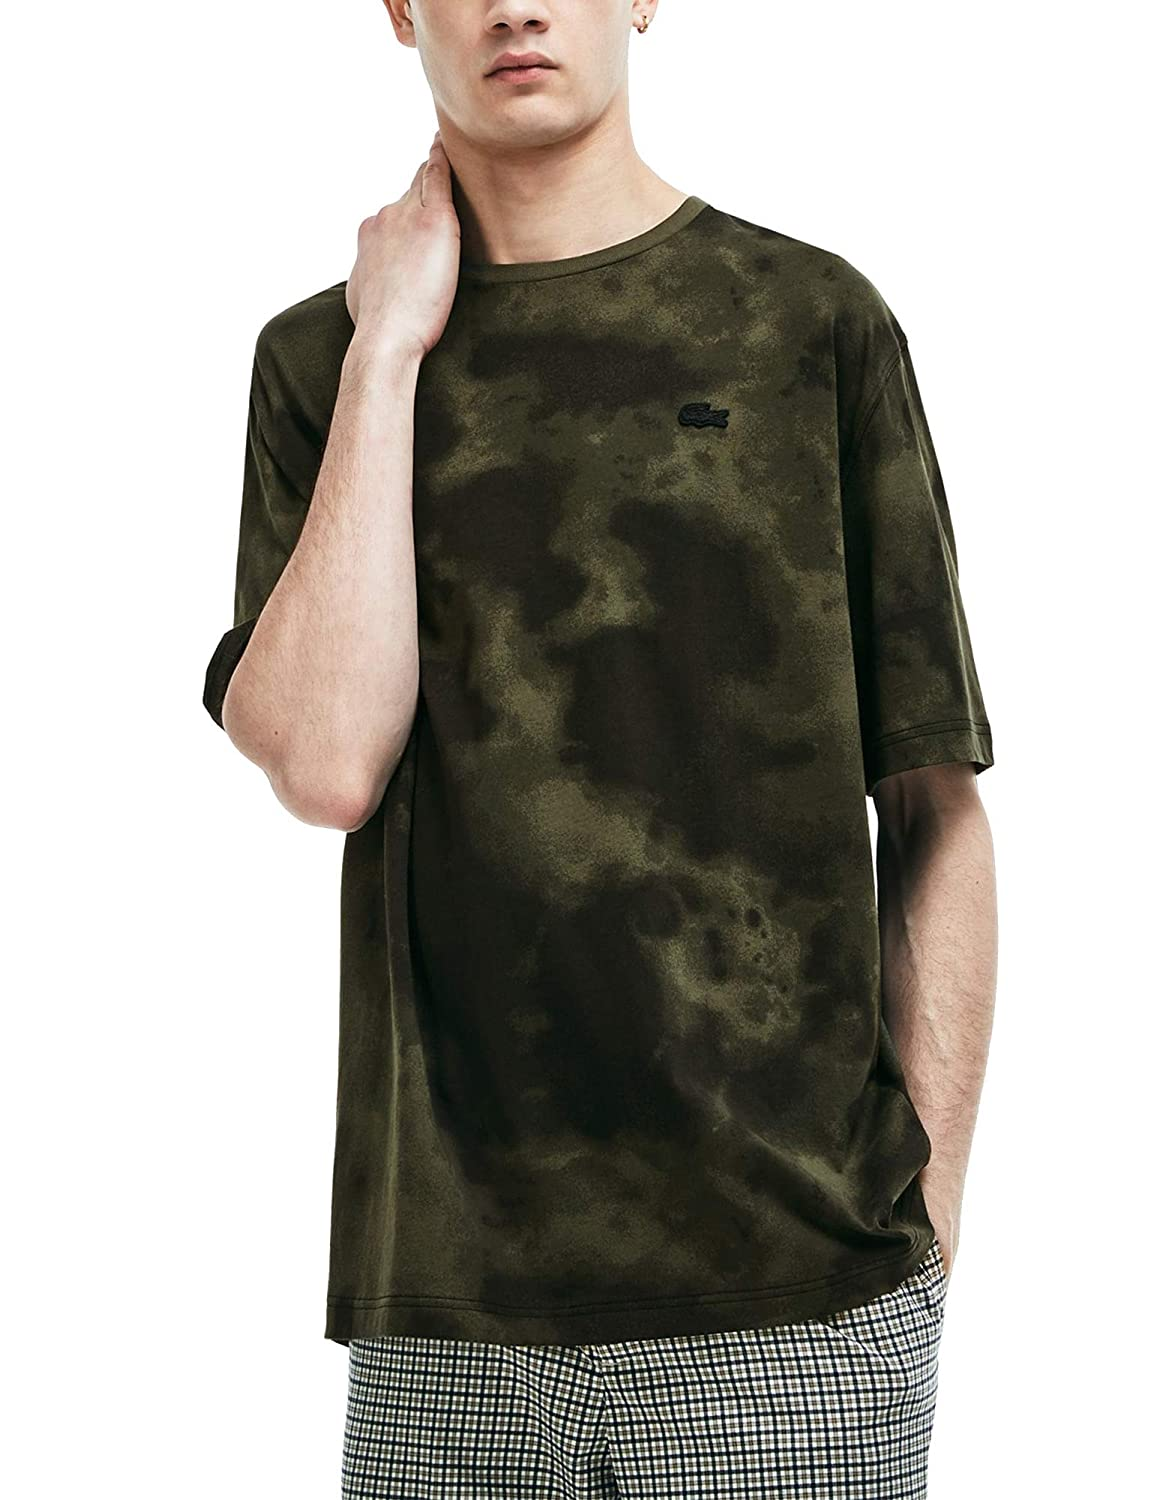 6ae69dbd Lacoste Men's Tie-Dye Short-Sleeved T-Shirt Green in Size Medium:  Amazon.co.uk: Clothing